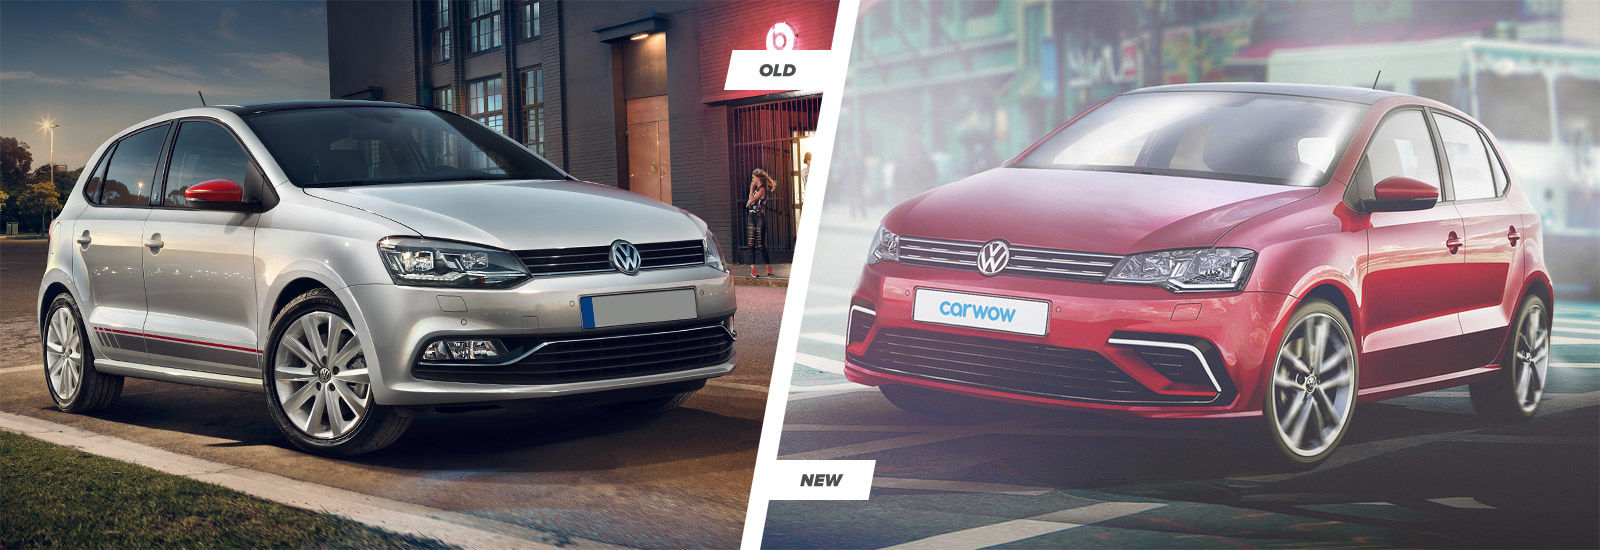 2018 Vw Bus Release Date >> 2017 VW Polo price, specs and release date | carwow